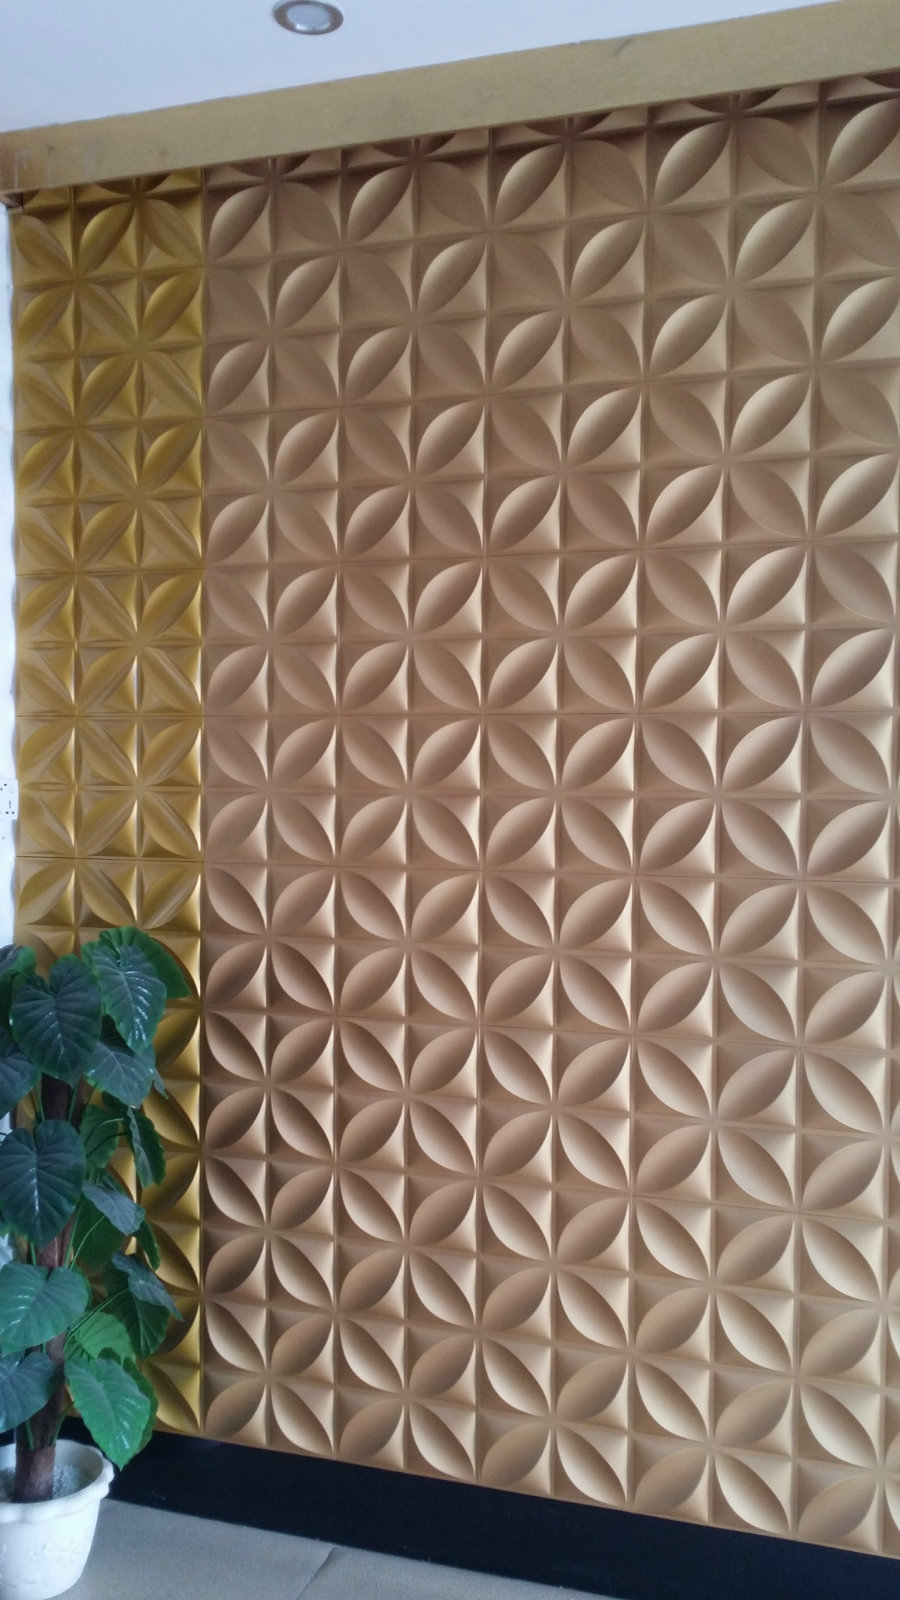 WPC, 3D wall cladding